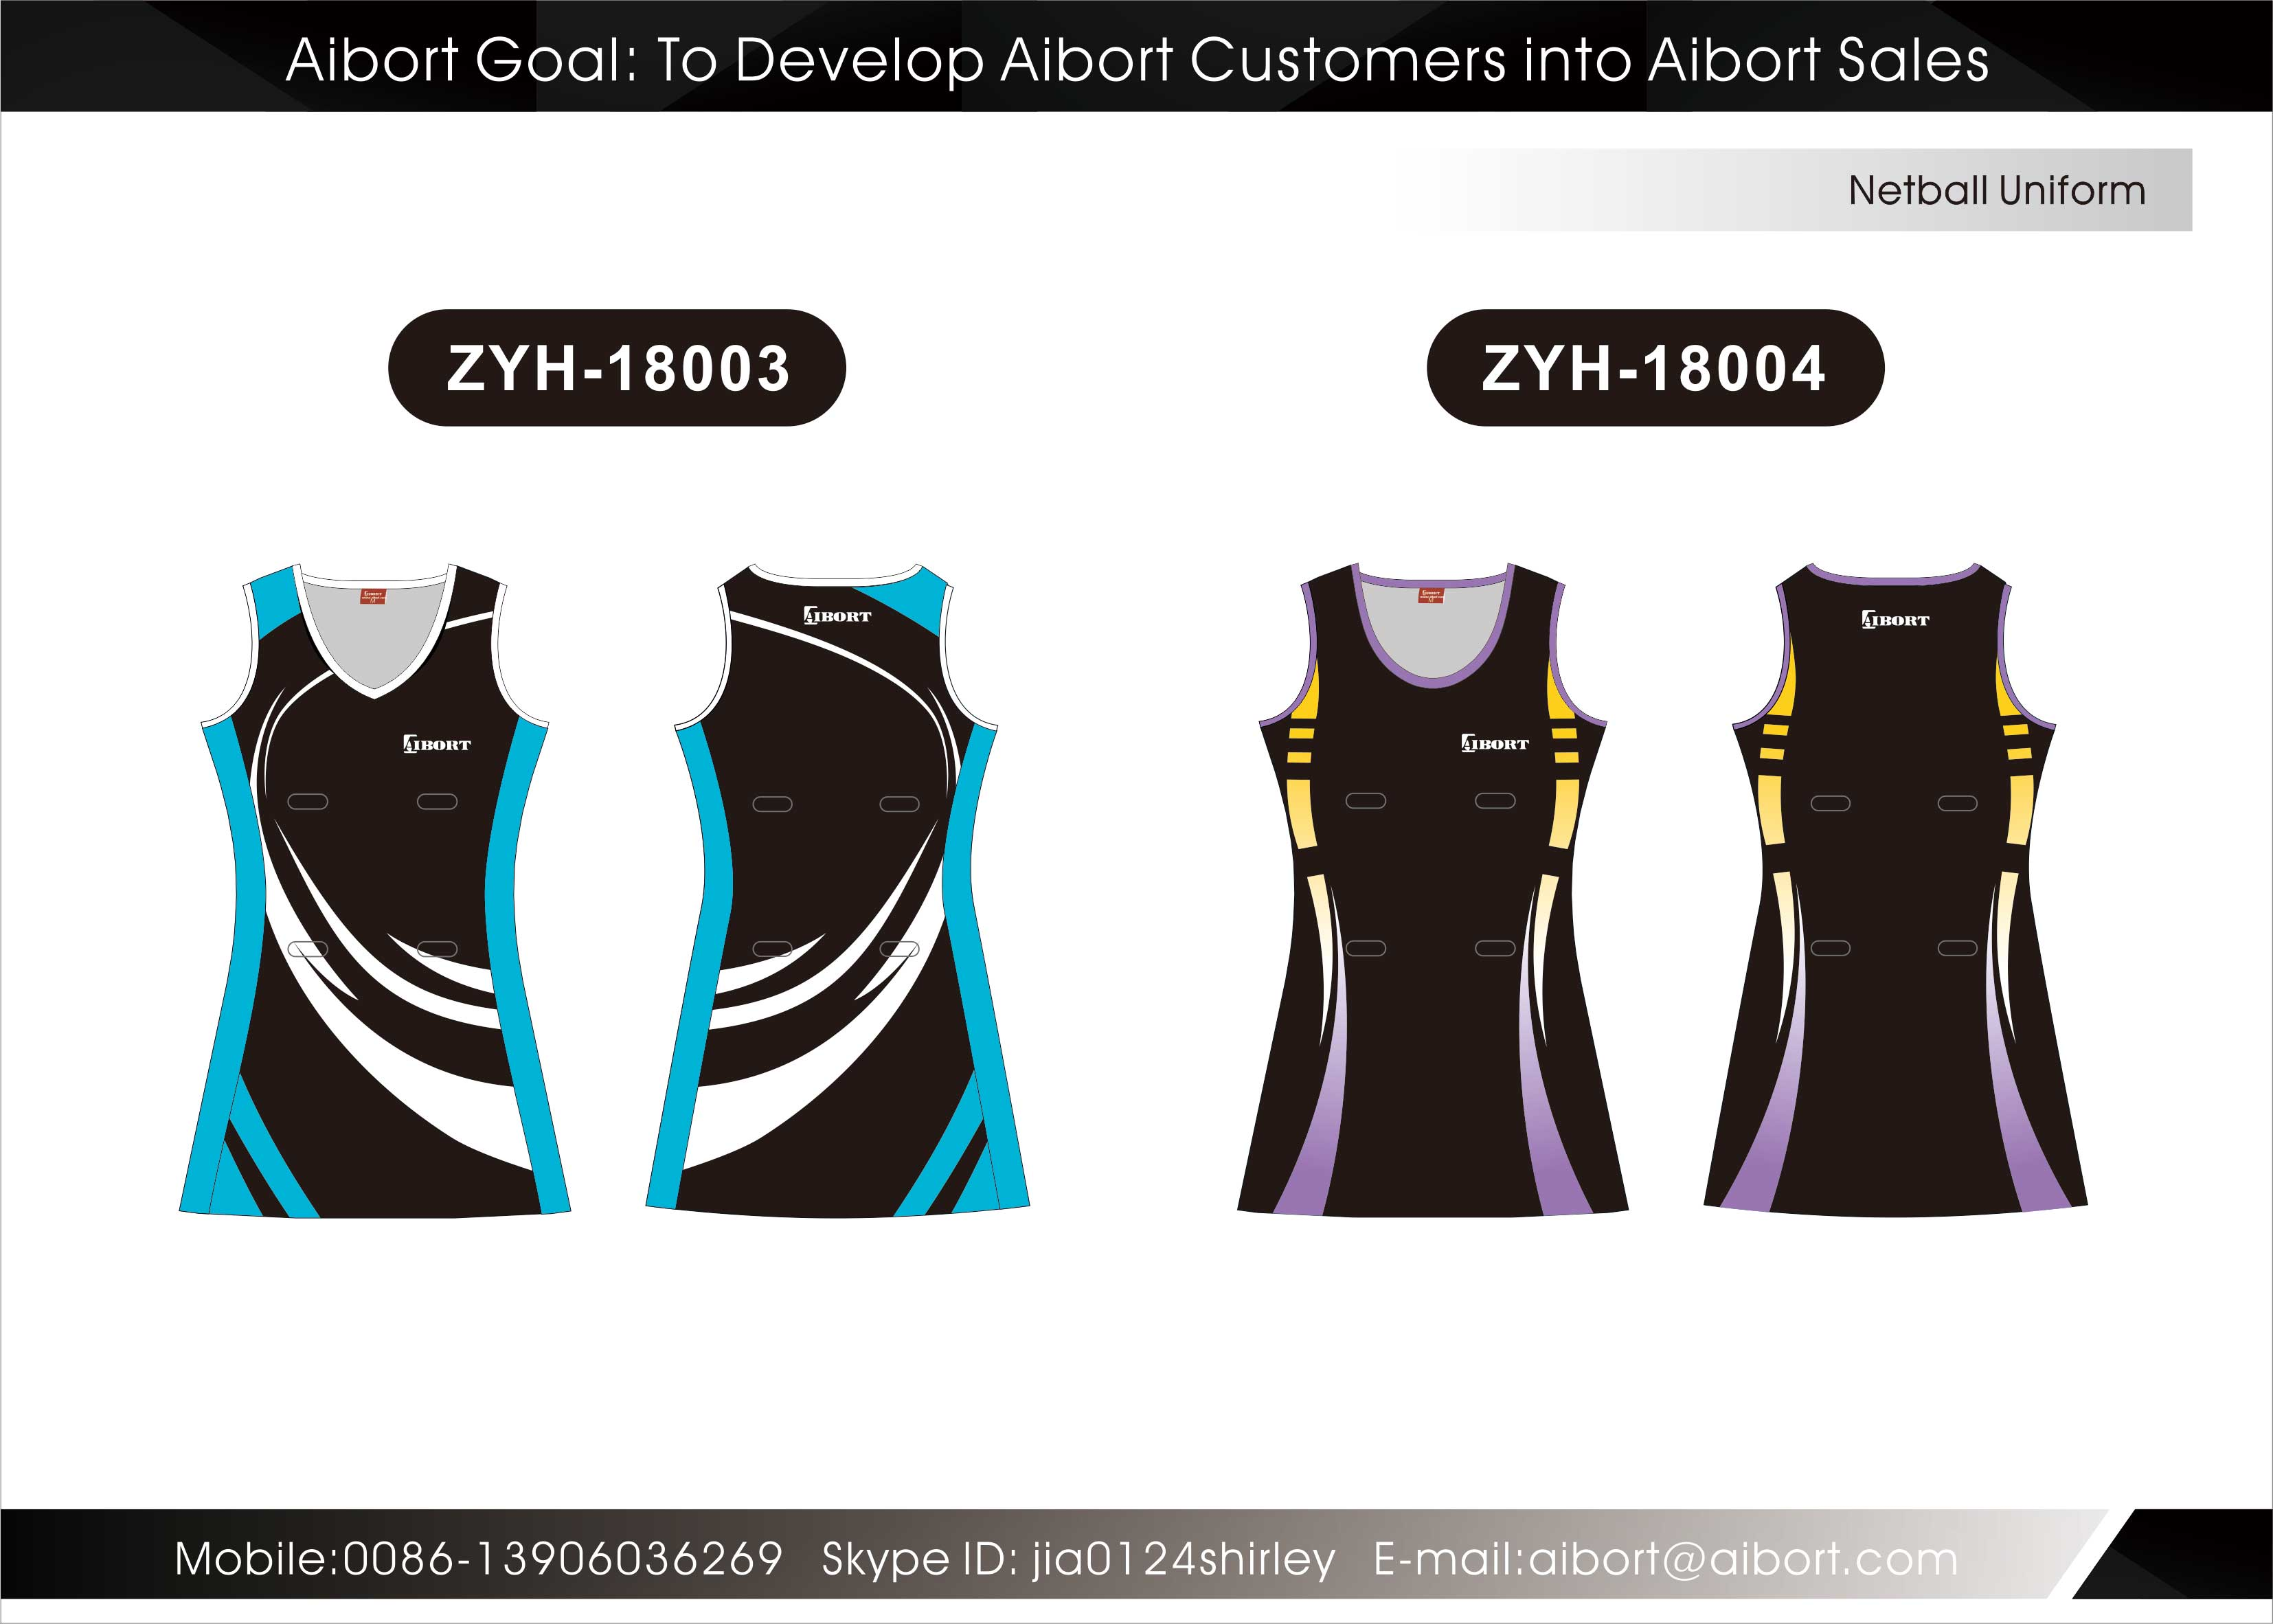 netball uniforms design your own